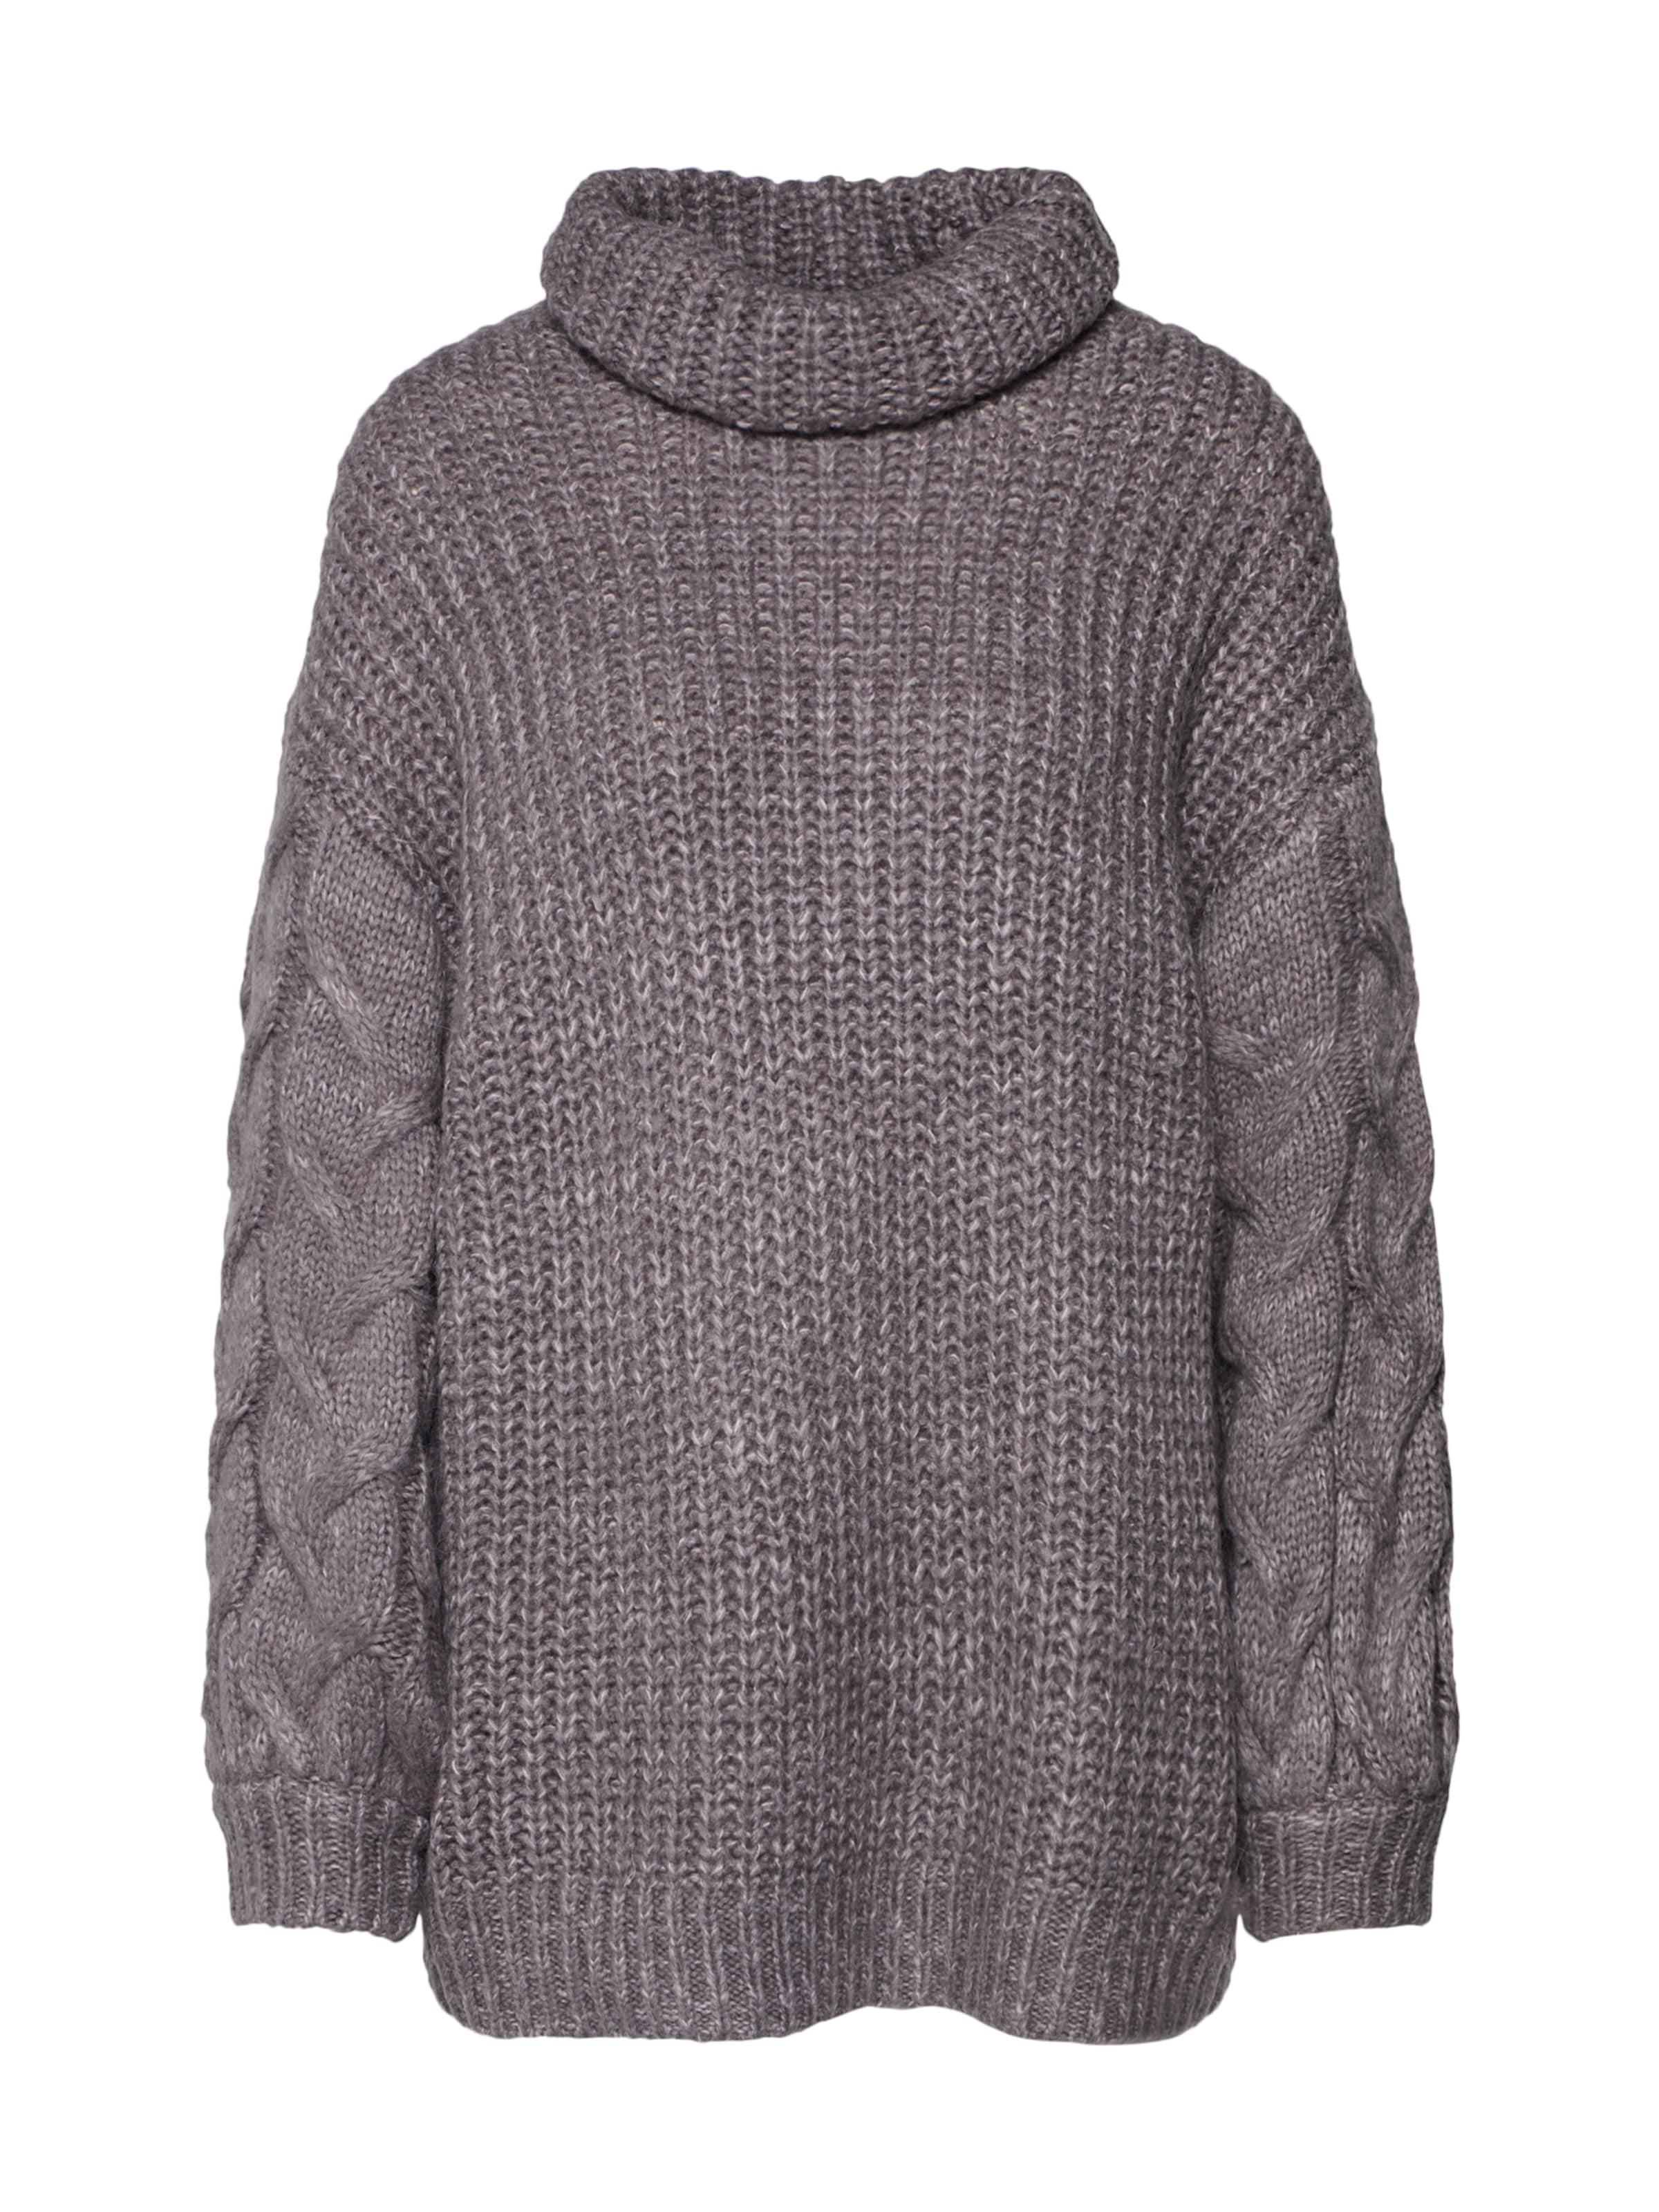 Gris En Youth Native over 'phonox' Pull A3Rqc54jL